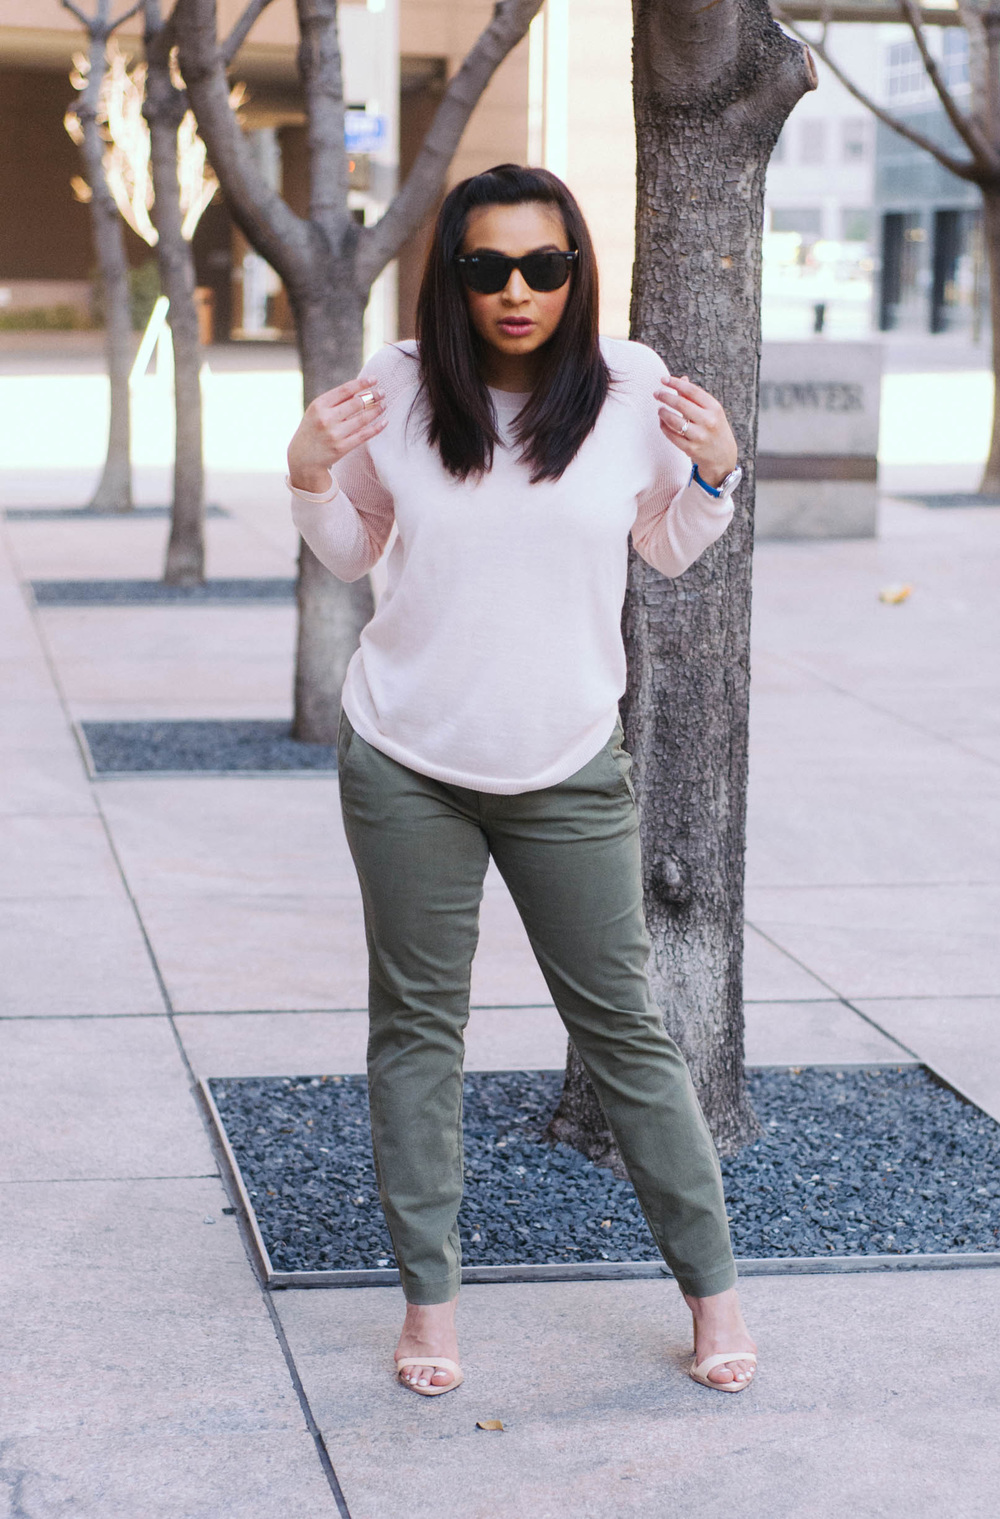 Sweater: J.Crew (lots of color options!) | Pants: J.Crew | Shoes: Zara (similar here) | Earrings: Kate Spade | Sunglasses: RayBan | Nail Polish: O.P.I.